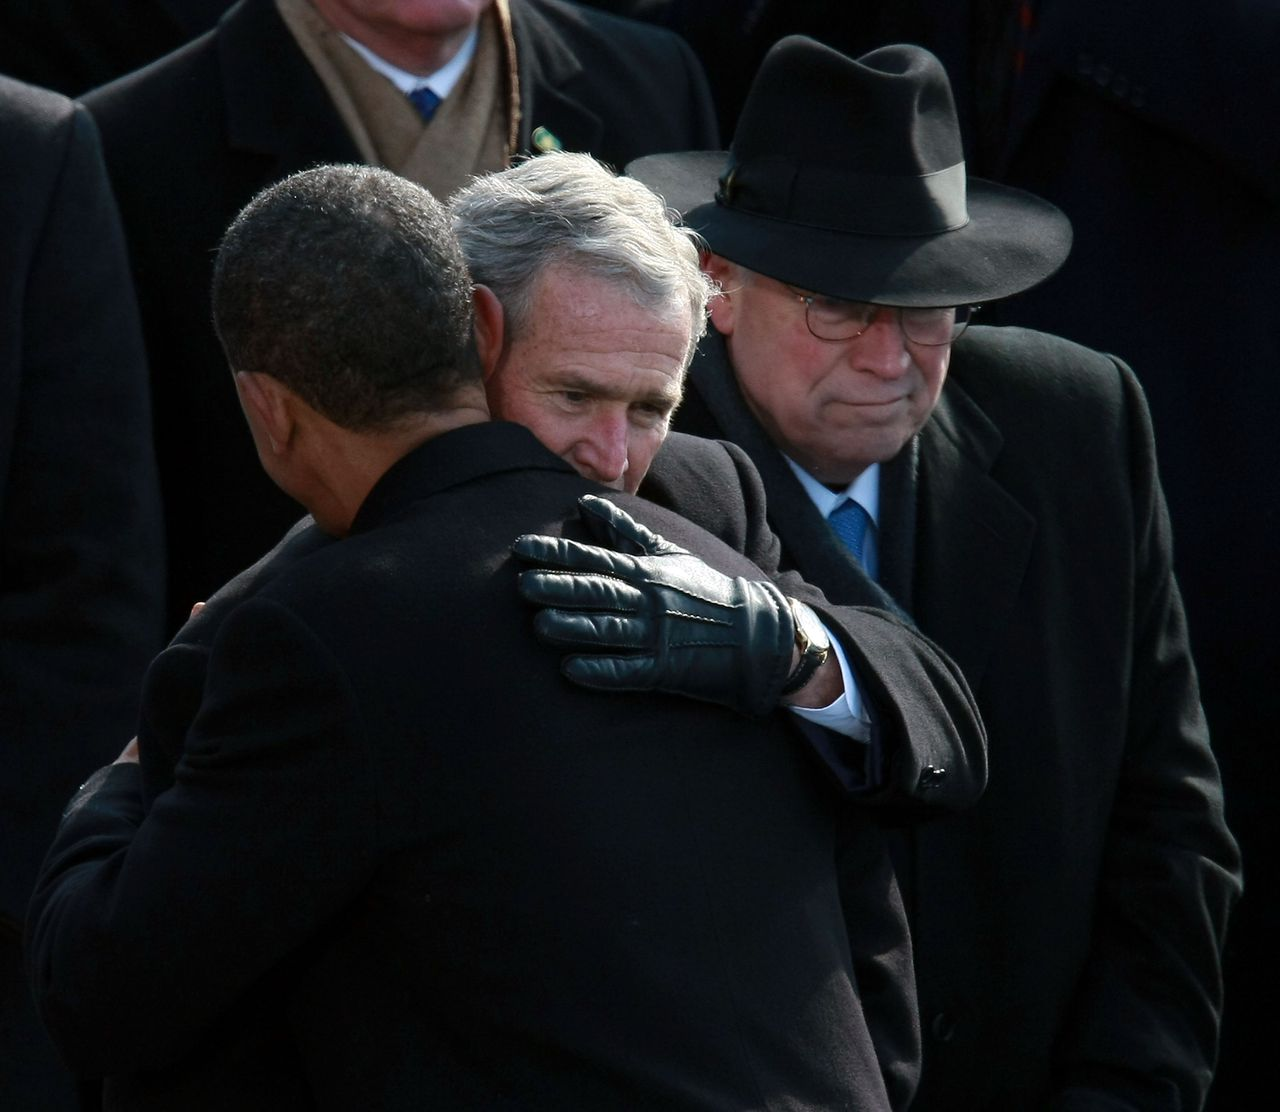 WASHINGTON - JANUARY 20: President Barack Obama shakes hugs president George W. Bush as vice-president Dick Cheney looks on during Obama's inauguration as the 44th President of the United States of America on the West Front of the Capitol January 20, 2009 in Washington, DC. Obama becomes the first African-American to be elected to the office of President in the history of the United States. Justin Sullivan/Getty Images/AFP == FOR NEWSPAPERS, INTERNET, TELCOS & TELEVISION USE ONLY ==